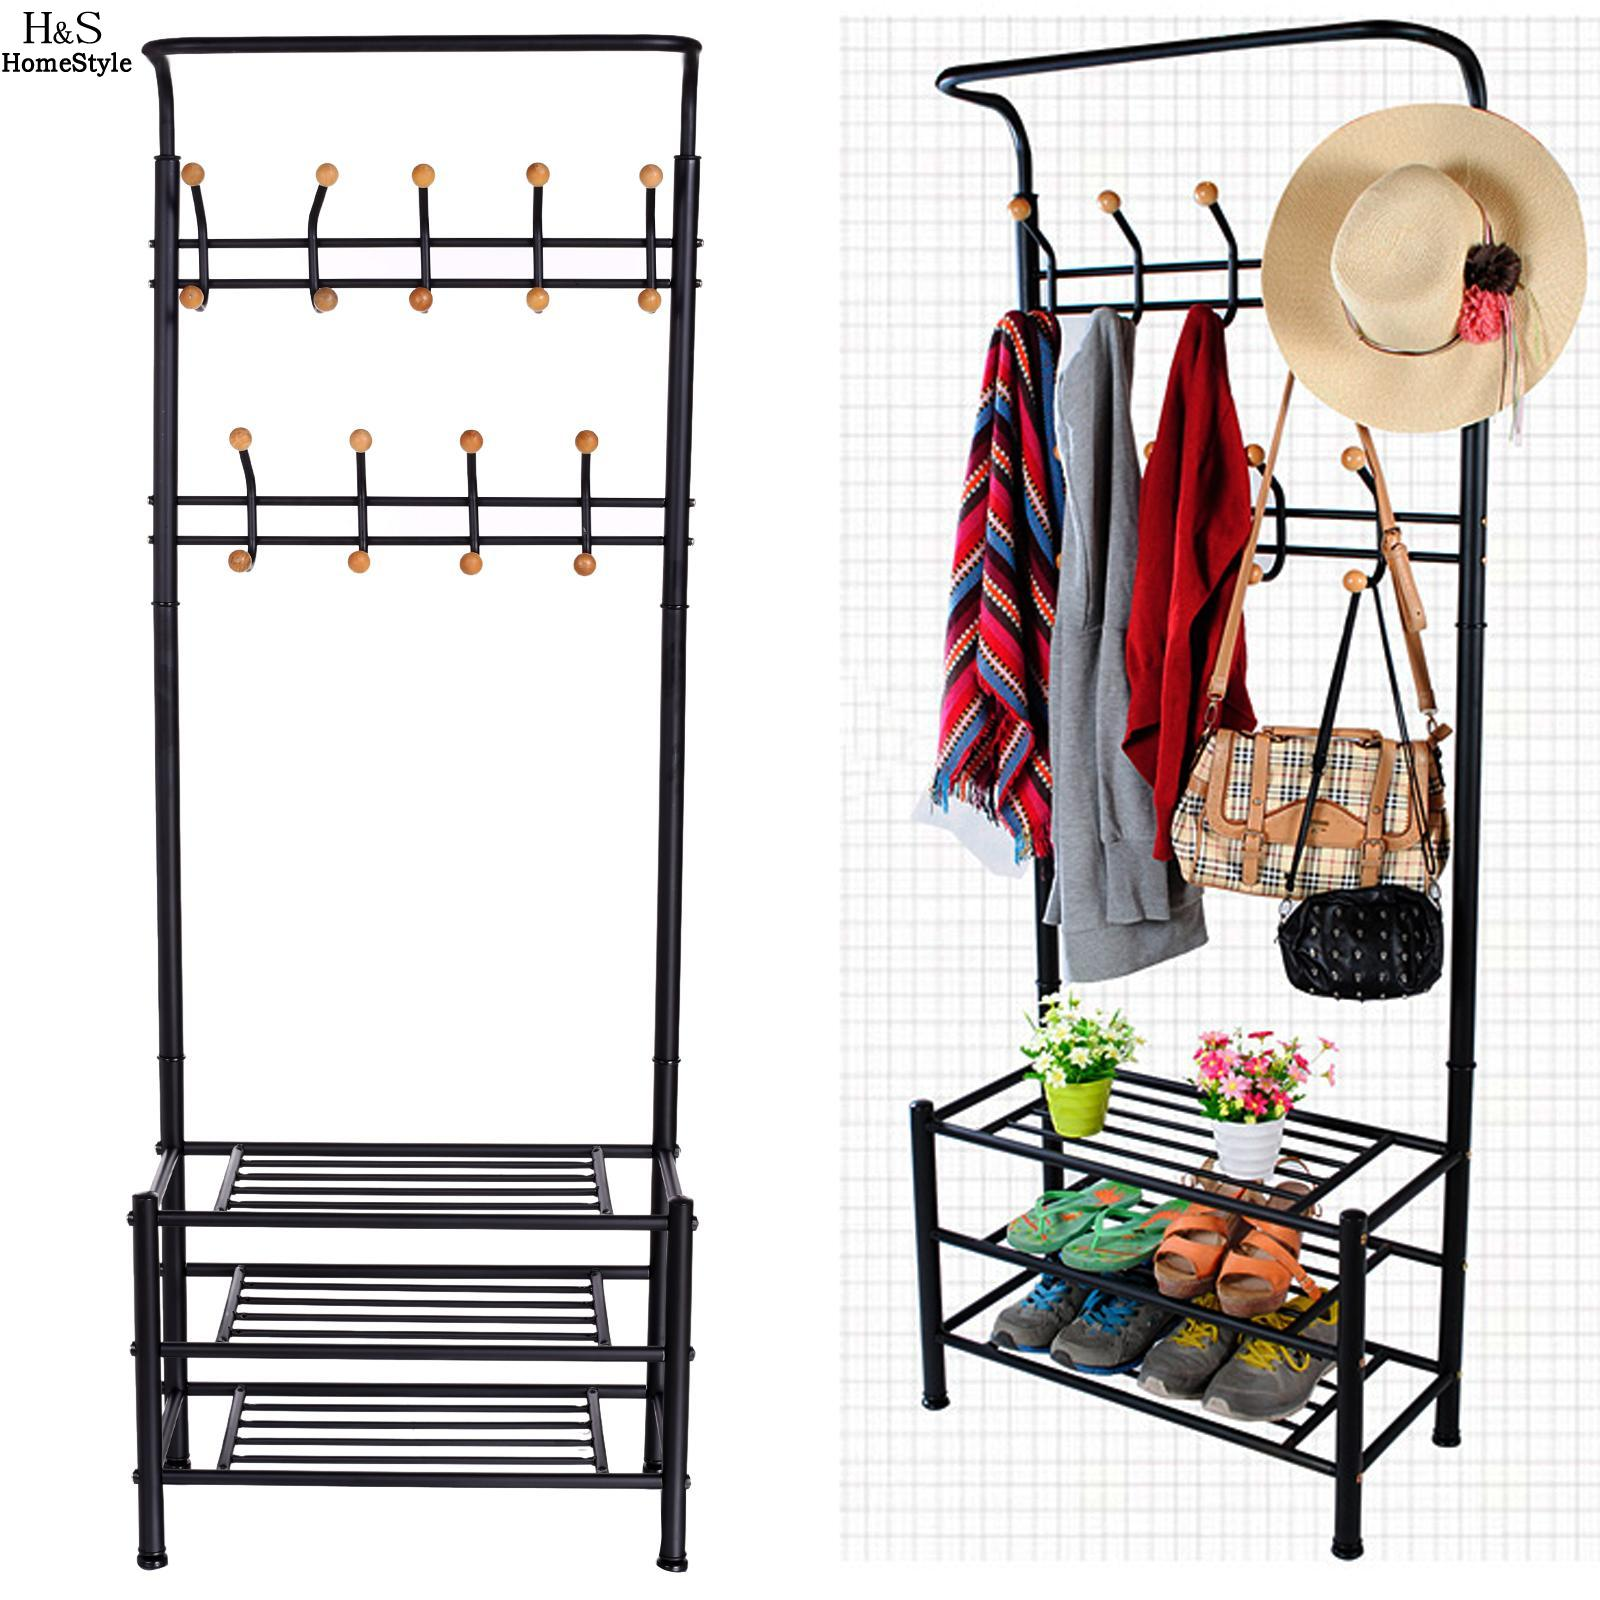 Homdox Coat Rack Stainless Steel Nonwovens Simple Assembly Bedroom Hanging Storage Clothes Hanger Wardrobe actionclub multifunction triangle simple coat rack stainless steel removable clothes hanging hanger floor stand coat rack wheels